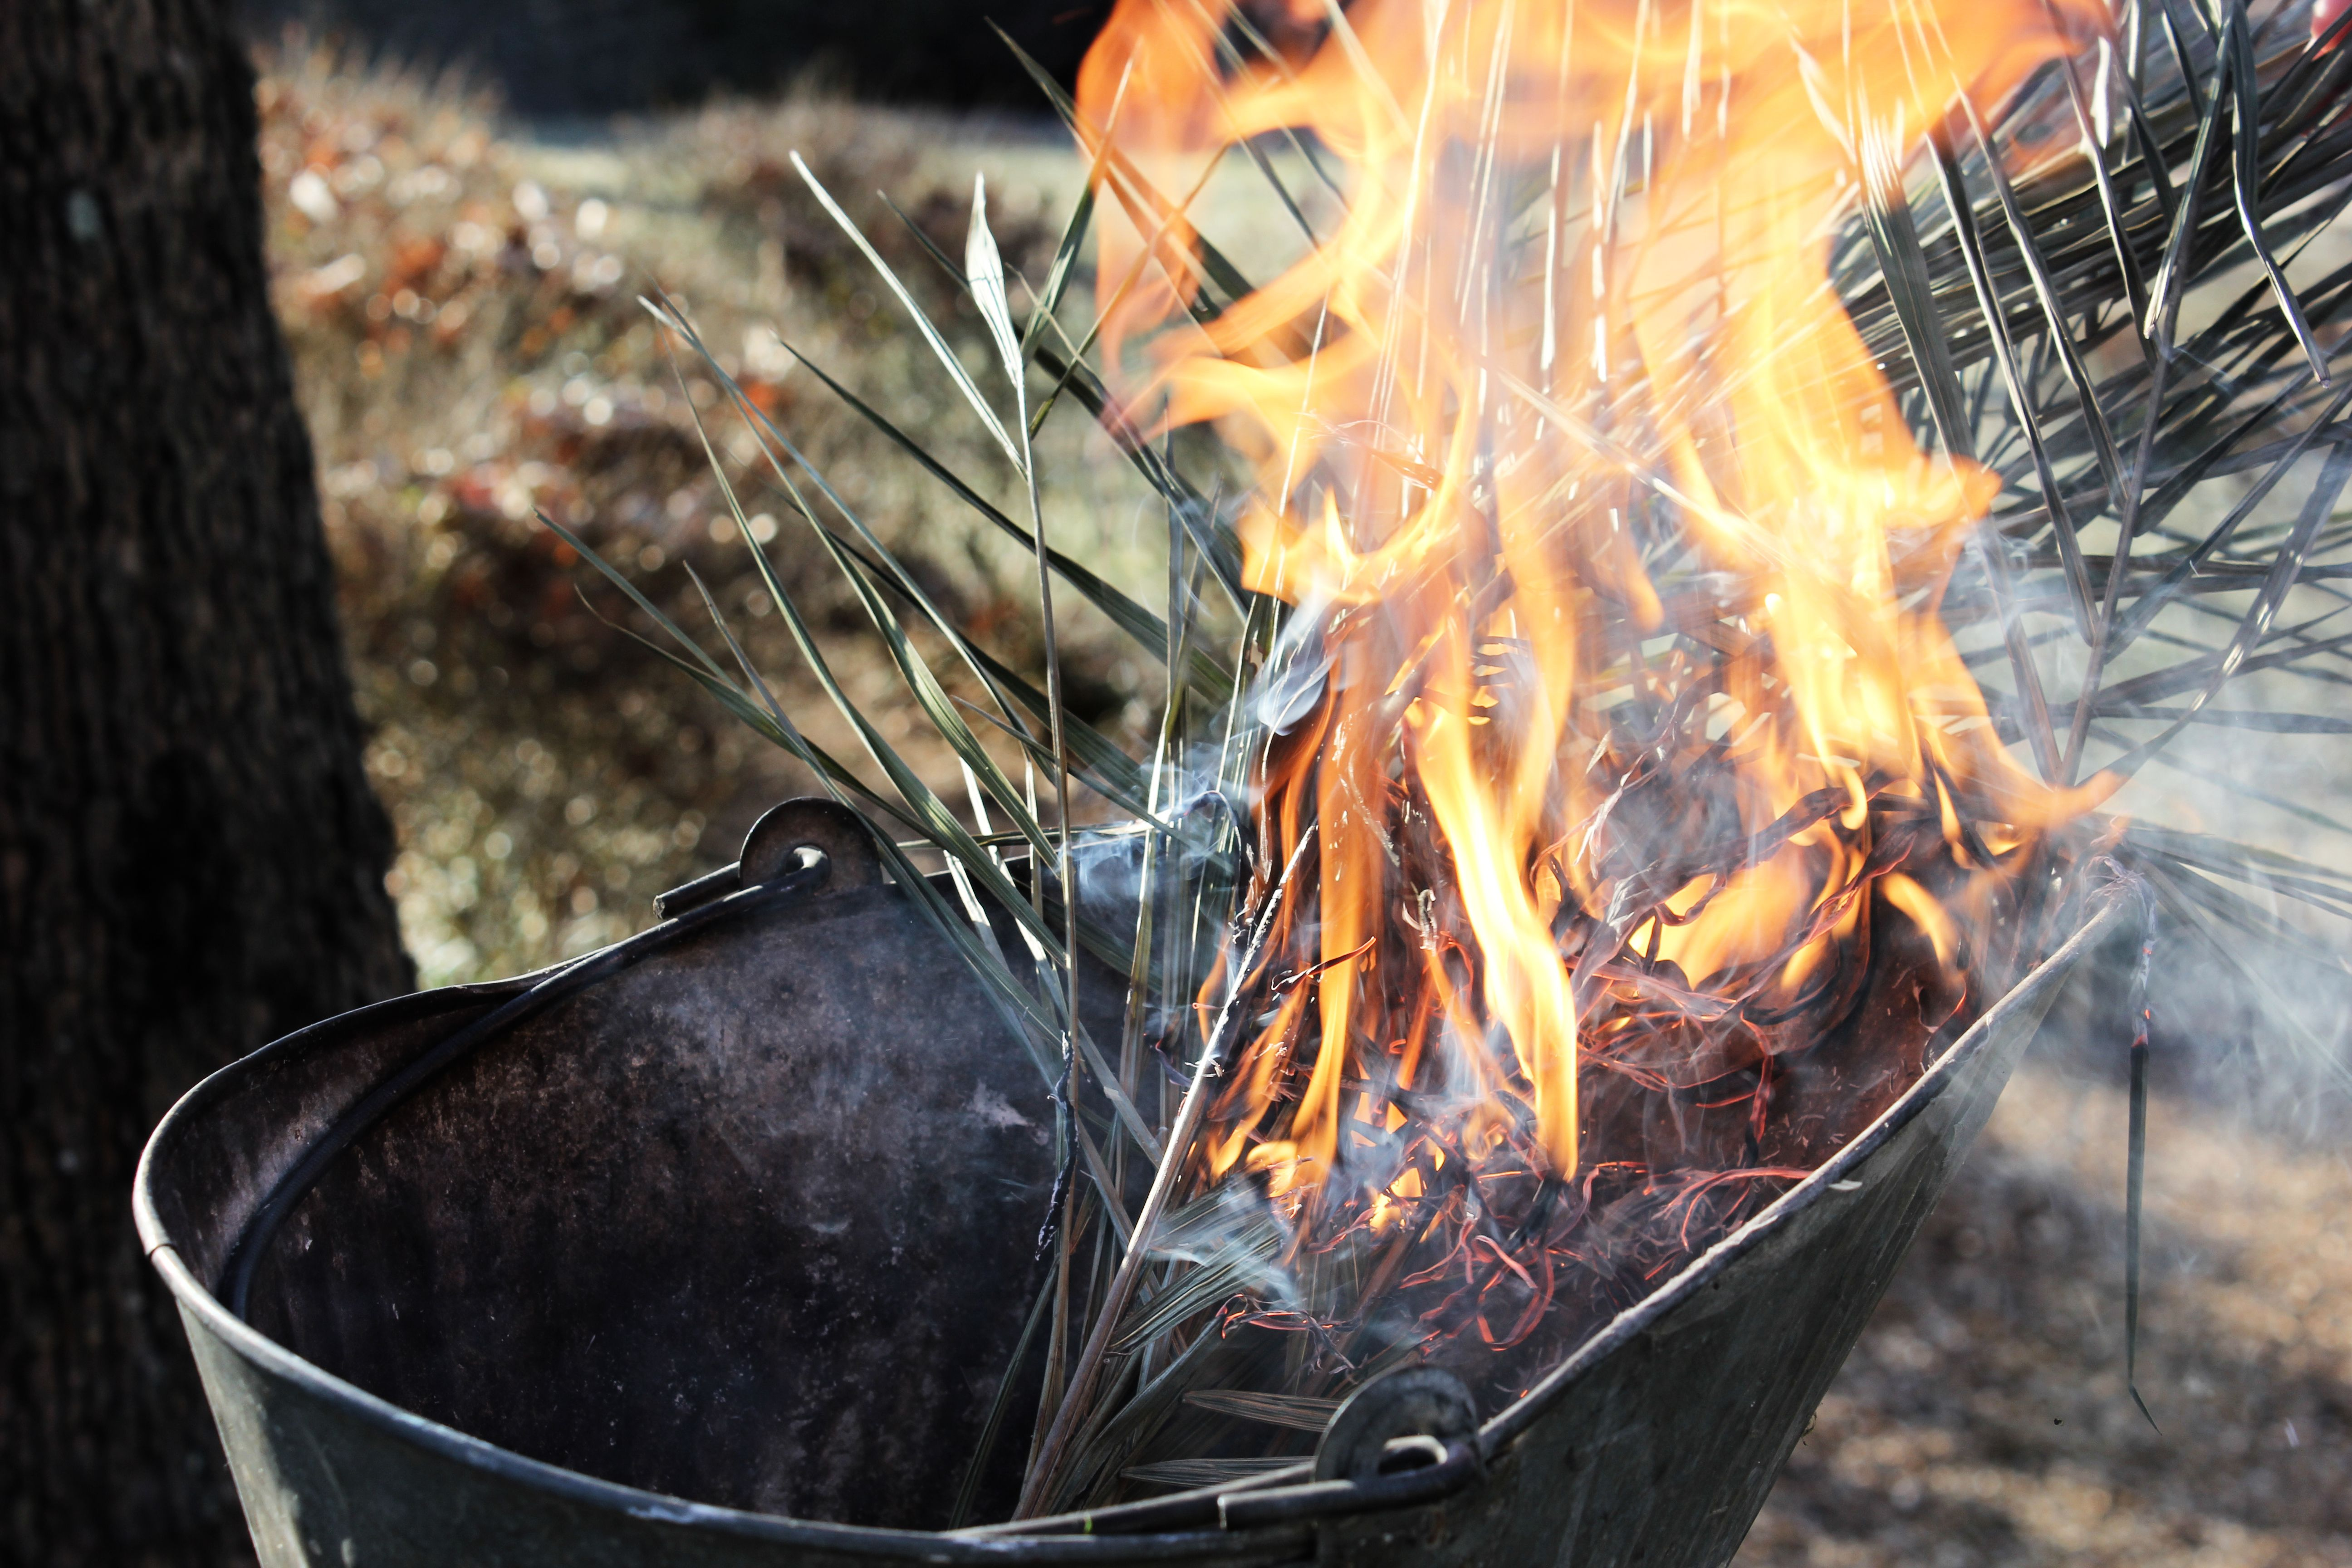 Dried palms being burned for ash wednesday ashes lent pinterest dried palms being burned for ash wednesday ashes buycottarizona Image collections